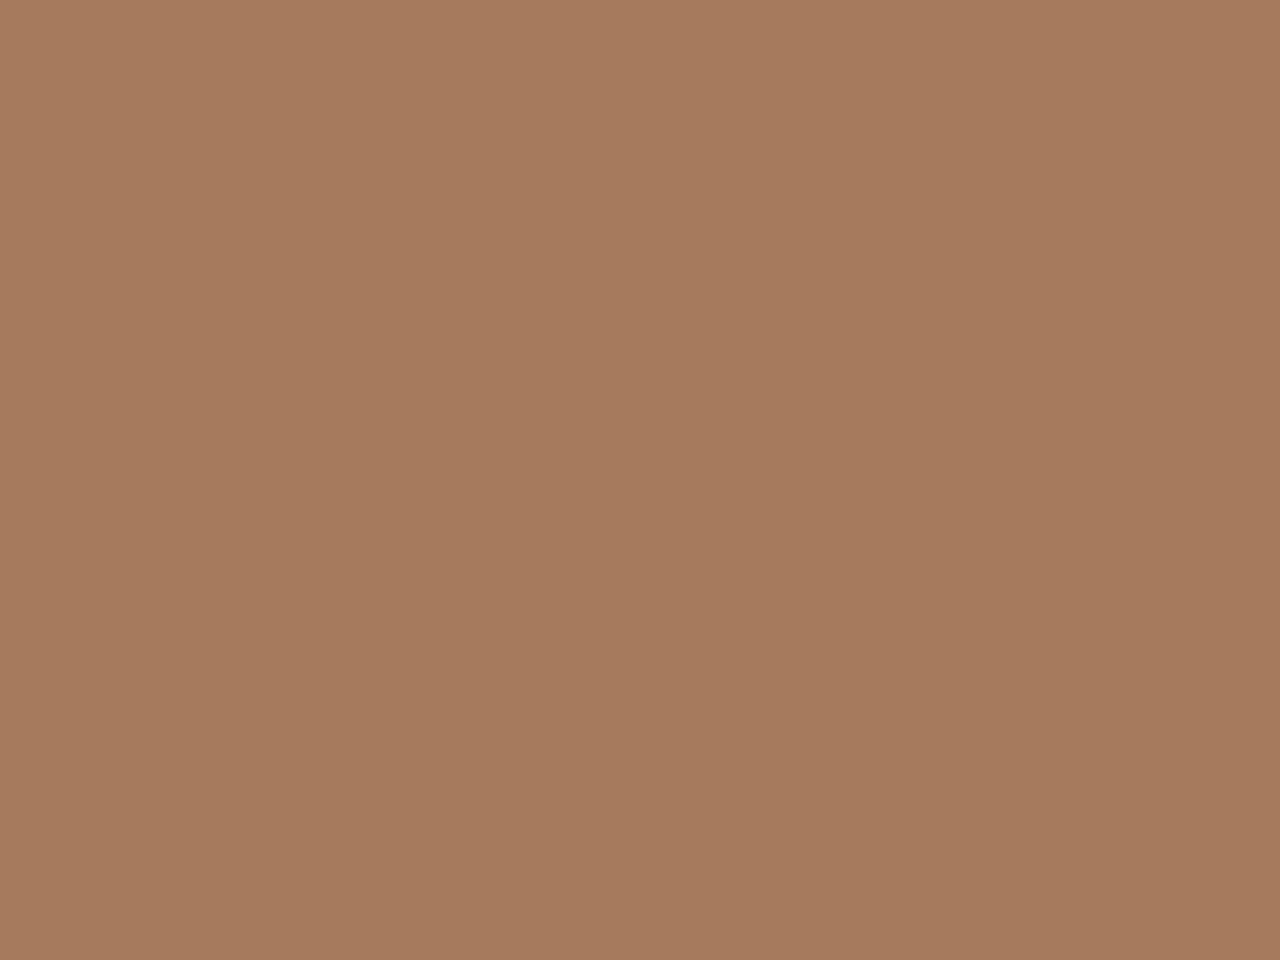 1280x960 Tuscan Tan Solid Color Background